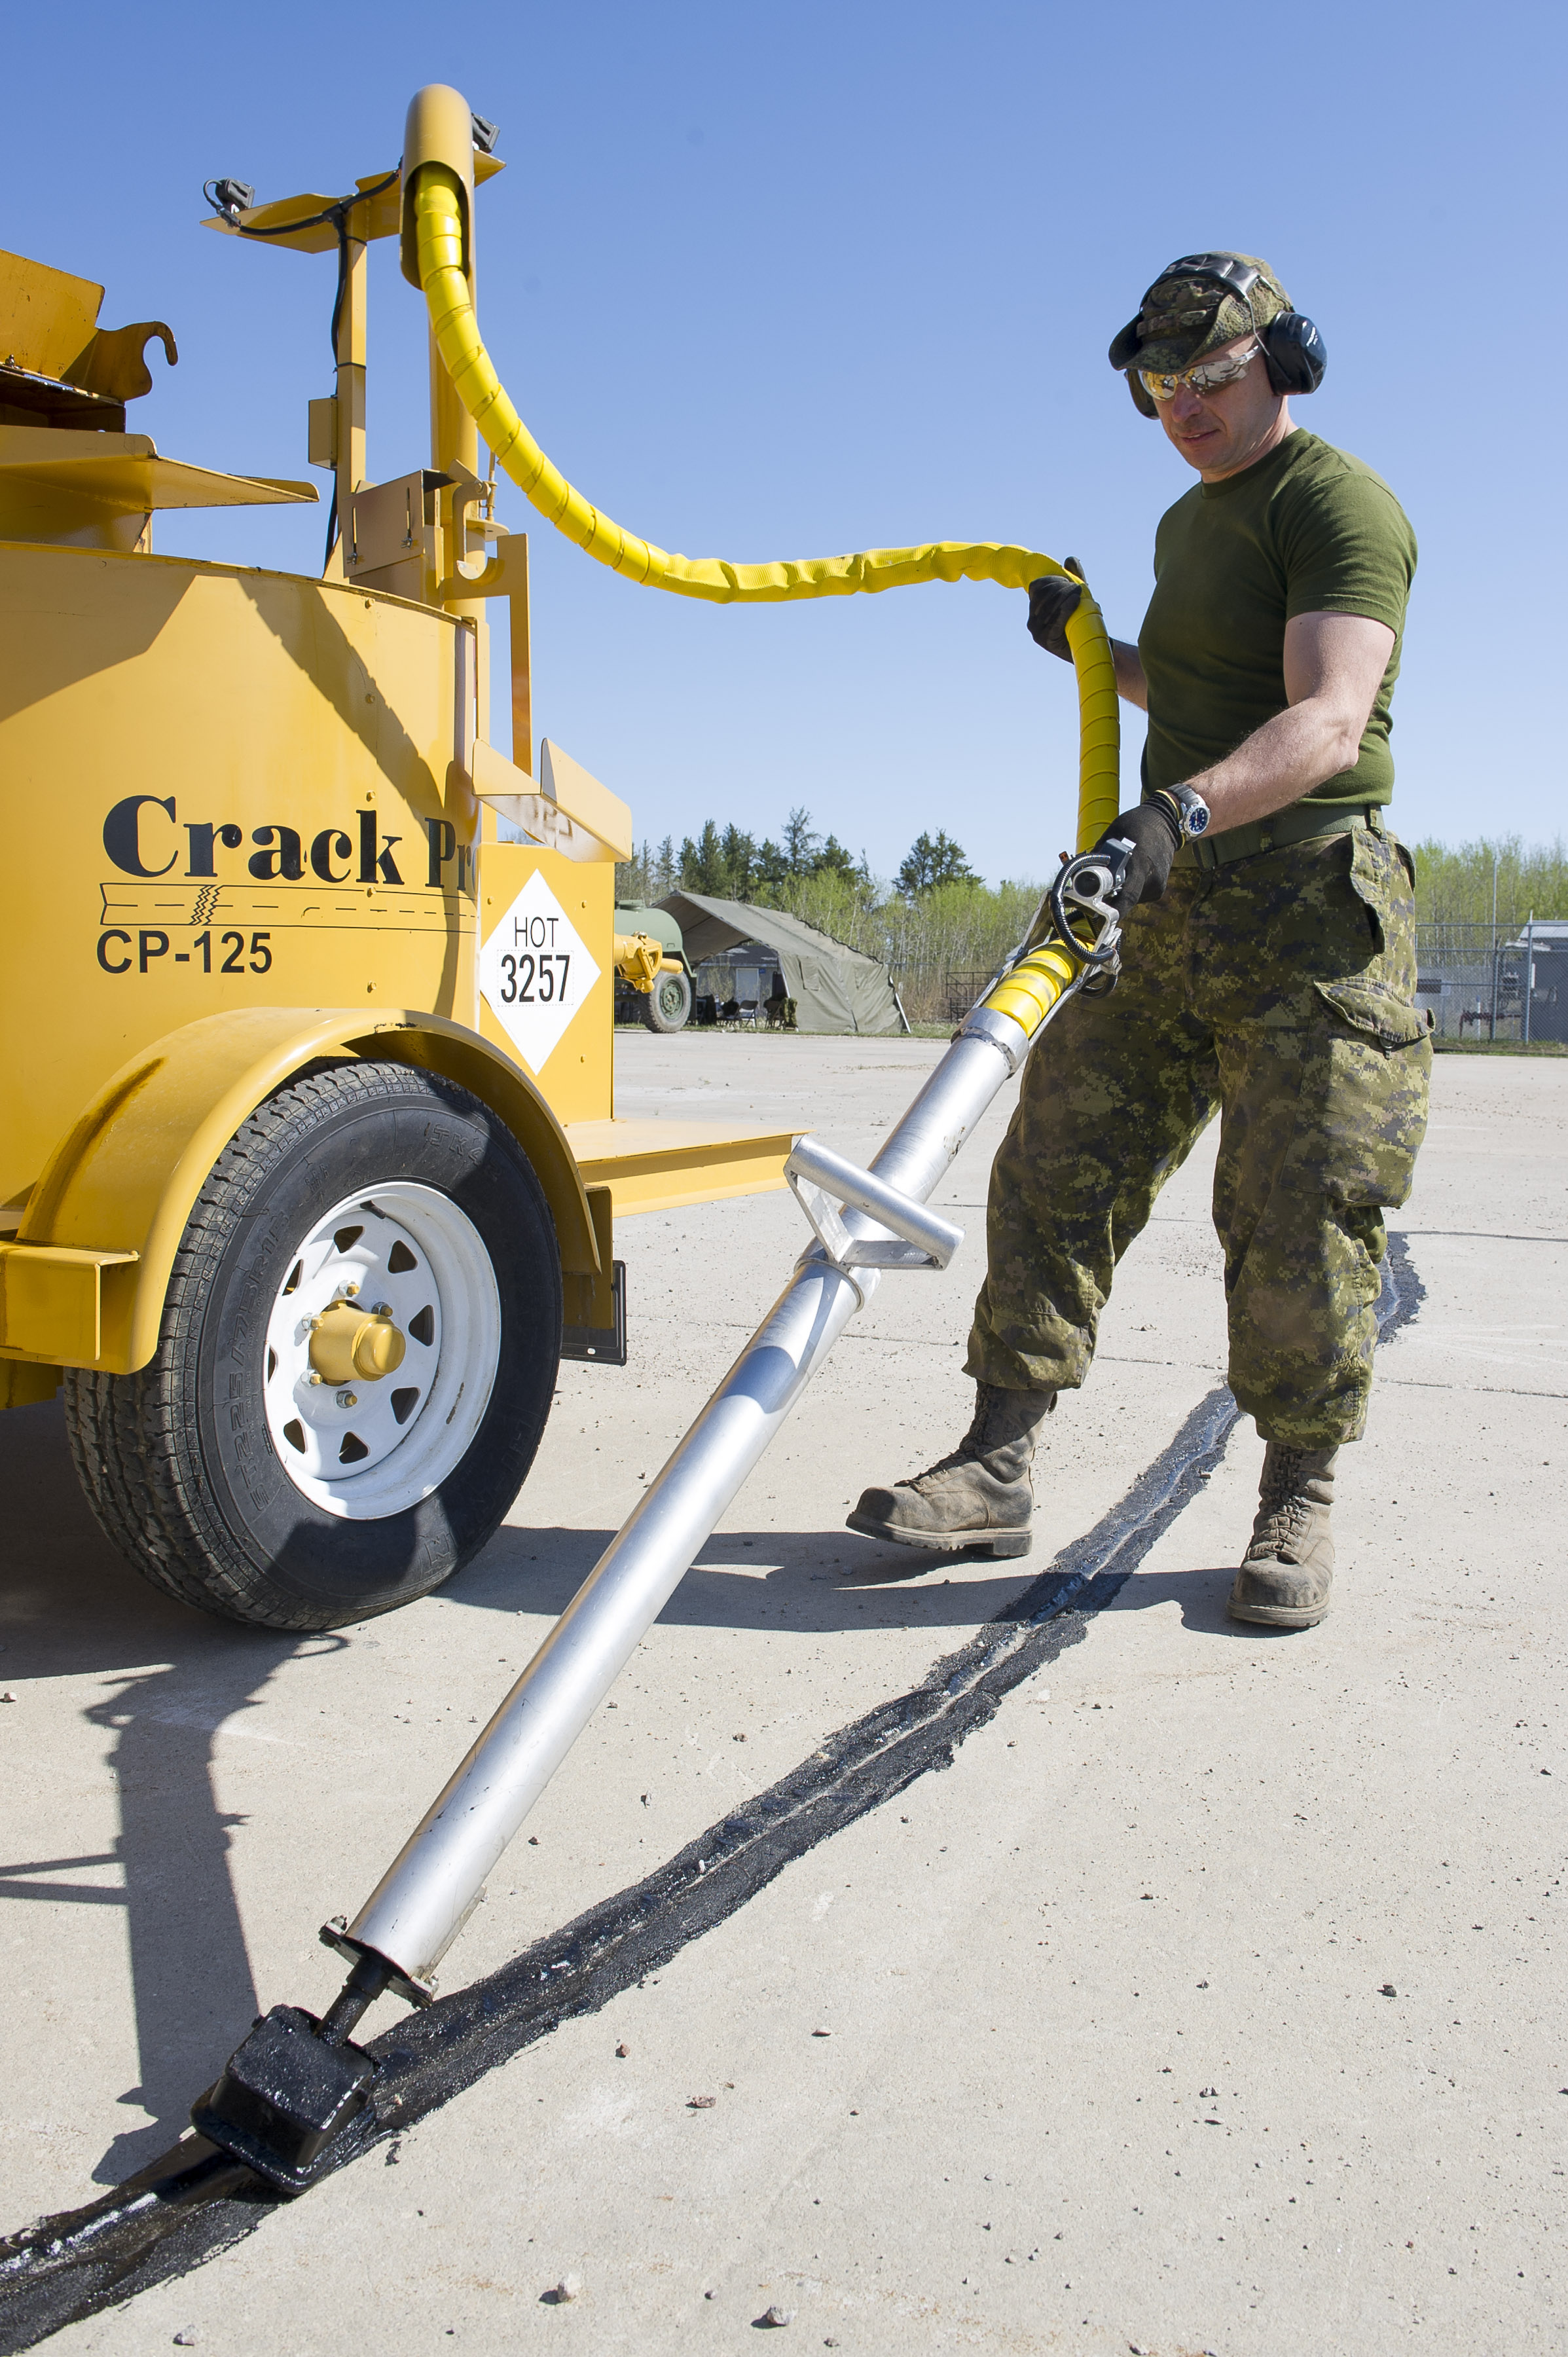 Corporal Steve Guay of 2 Wing Bagotville, Quebec, fills a crack in a concrete runway with hot oil during the Airfield Light Repair course held at 4 Wing Cold Lake, Alberta, from May 8 to 19, 2017. PHOTO: Corporal Justin Roy, CK07-2017-0348-003